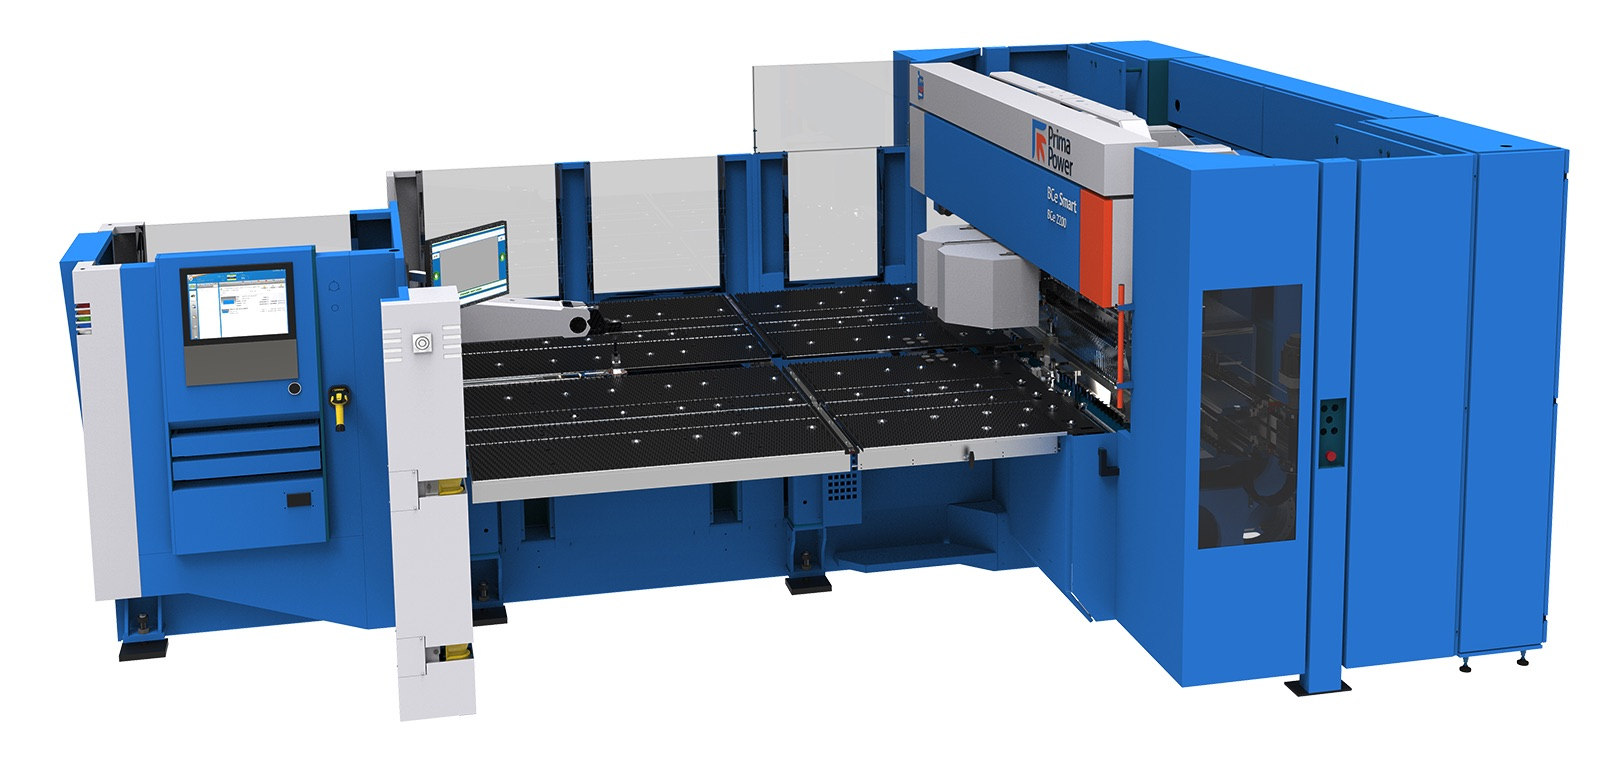 Prima Power BCe Smart panel bender